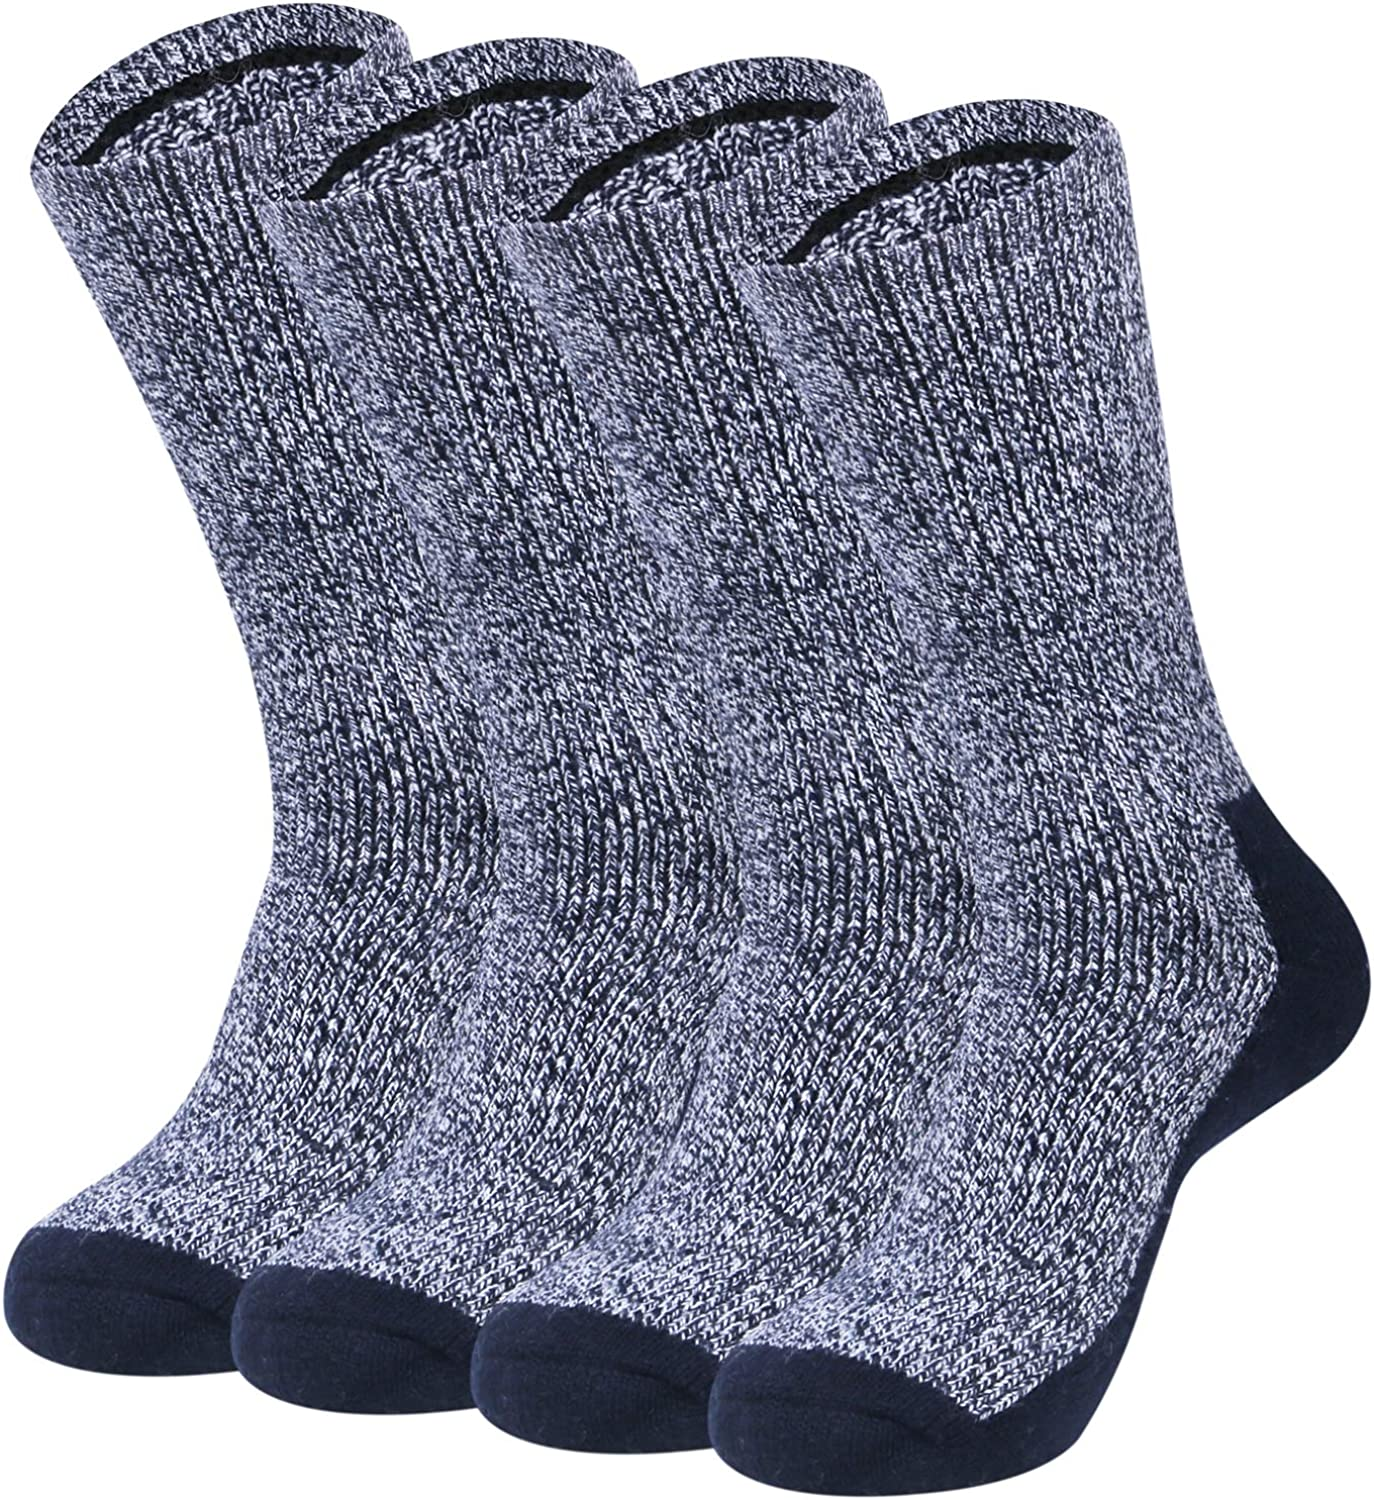 Loritta 2 Pack Thermal Socks for Men - Merino Wool Insultated Socks Winter Mens Warm Socks Black